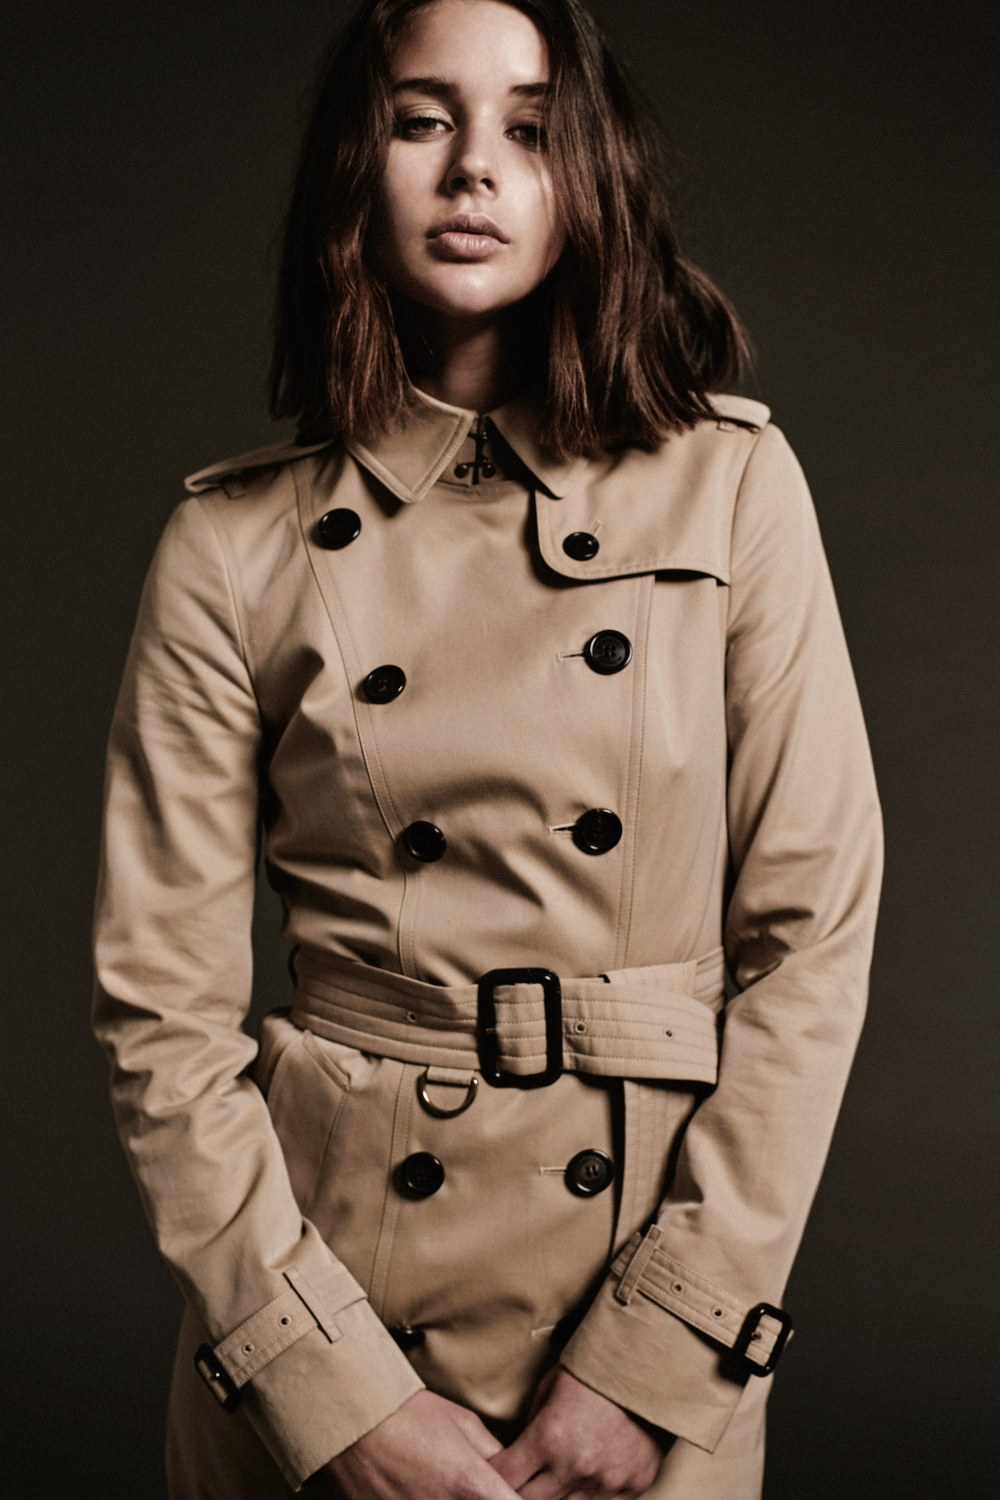 harper-and-harley_sara-donaldson_burberry_trench_wardrobe_style_classic_essentials_1